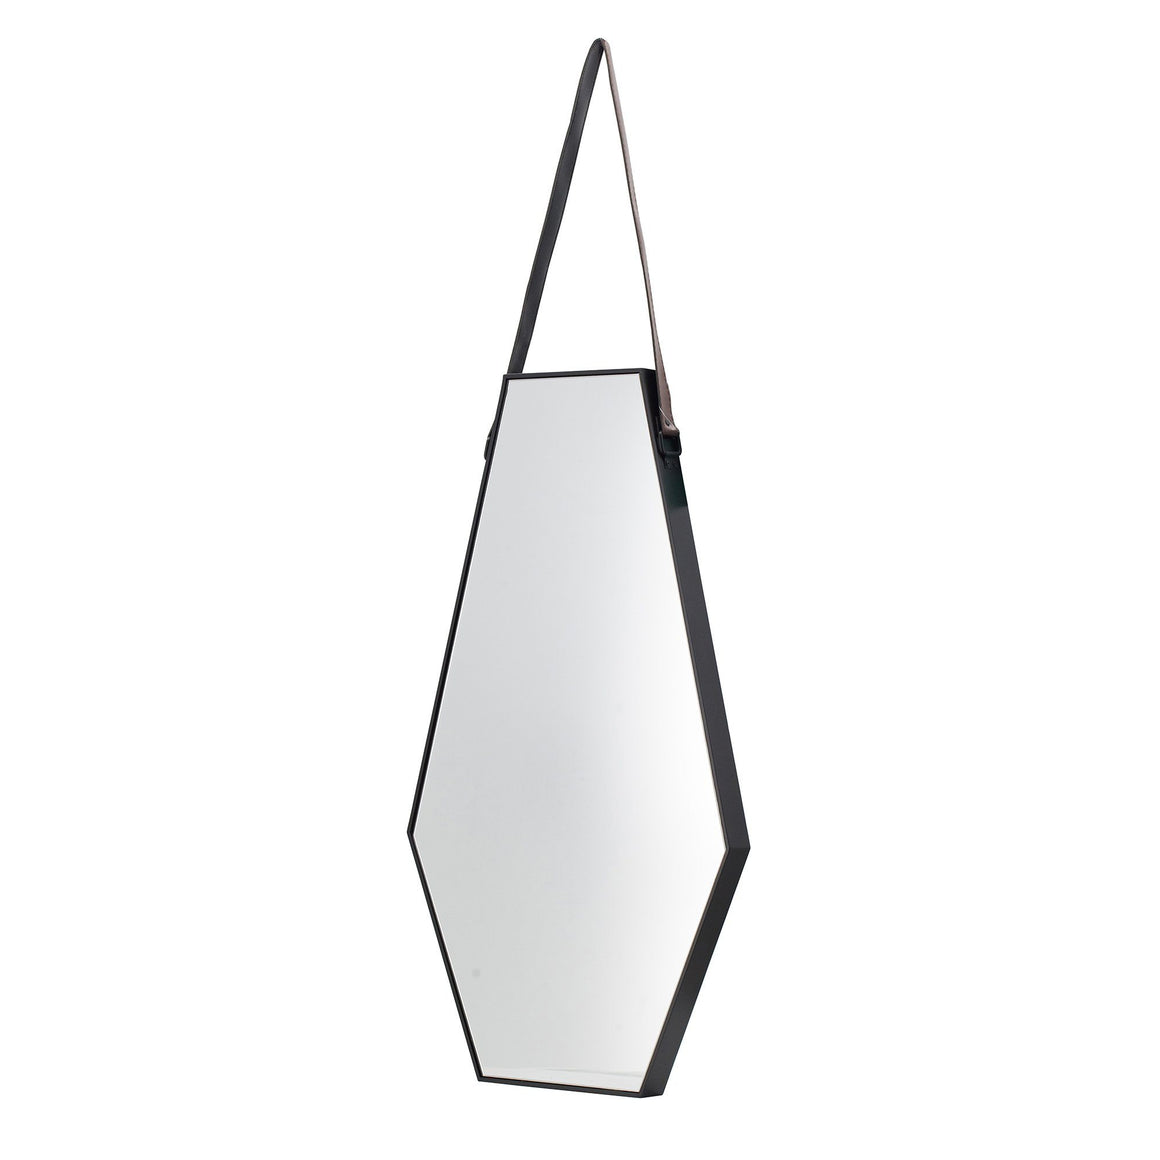 GEOMETRIC PENDANT MIRROR Philbee Interiors